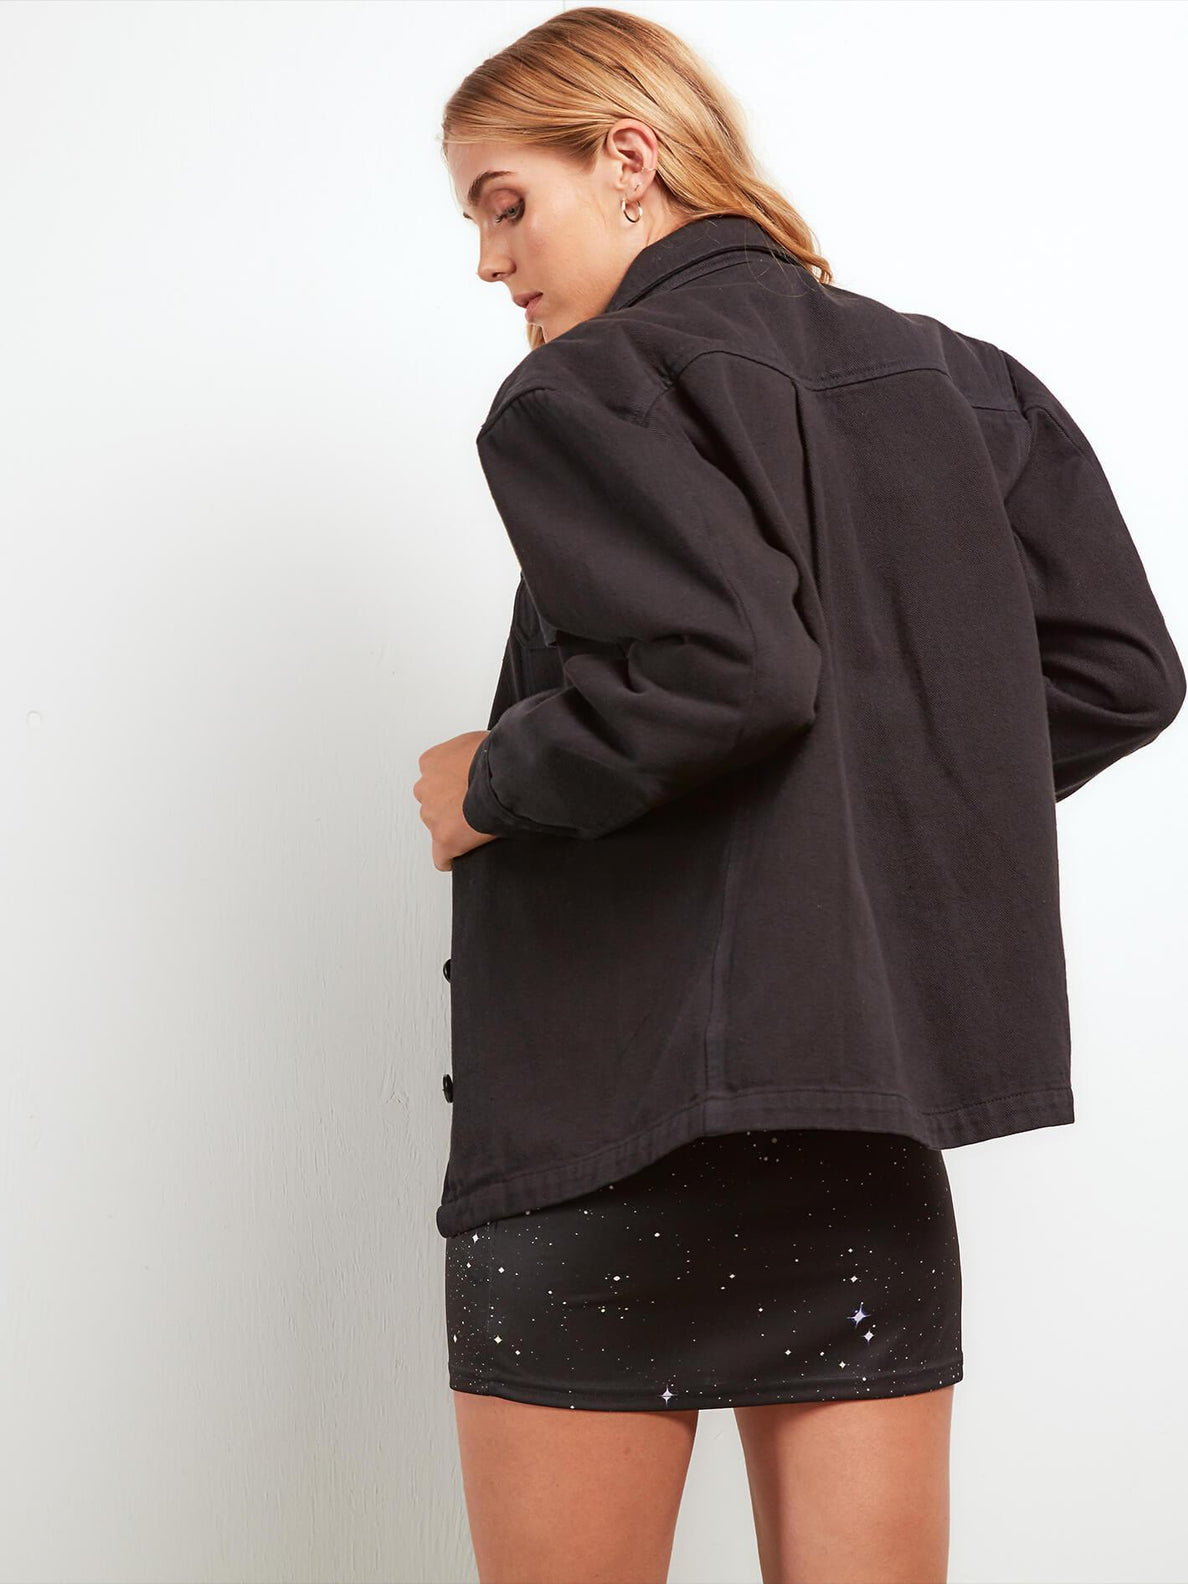 Cosmic Drift Jacket In Black, Back View